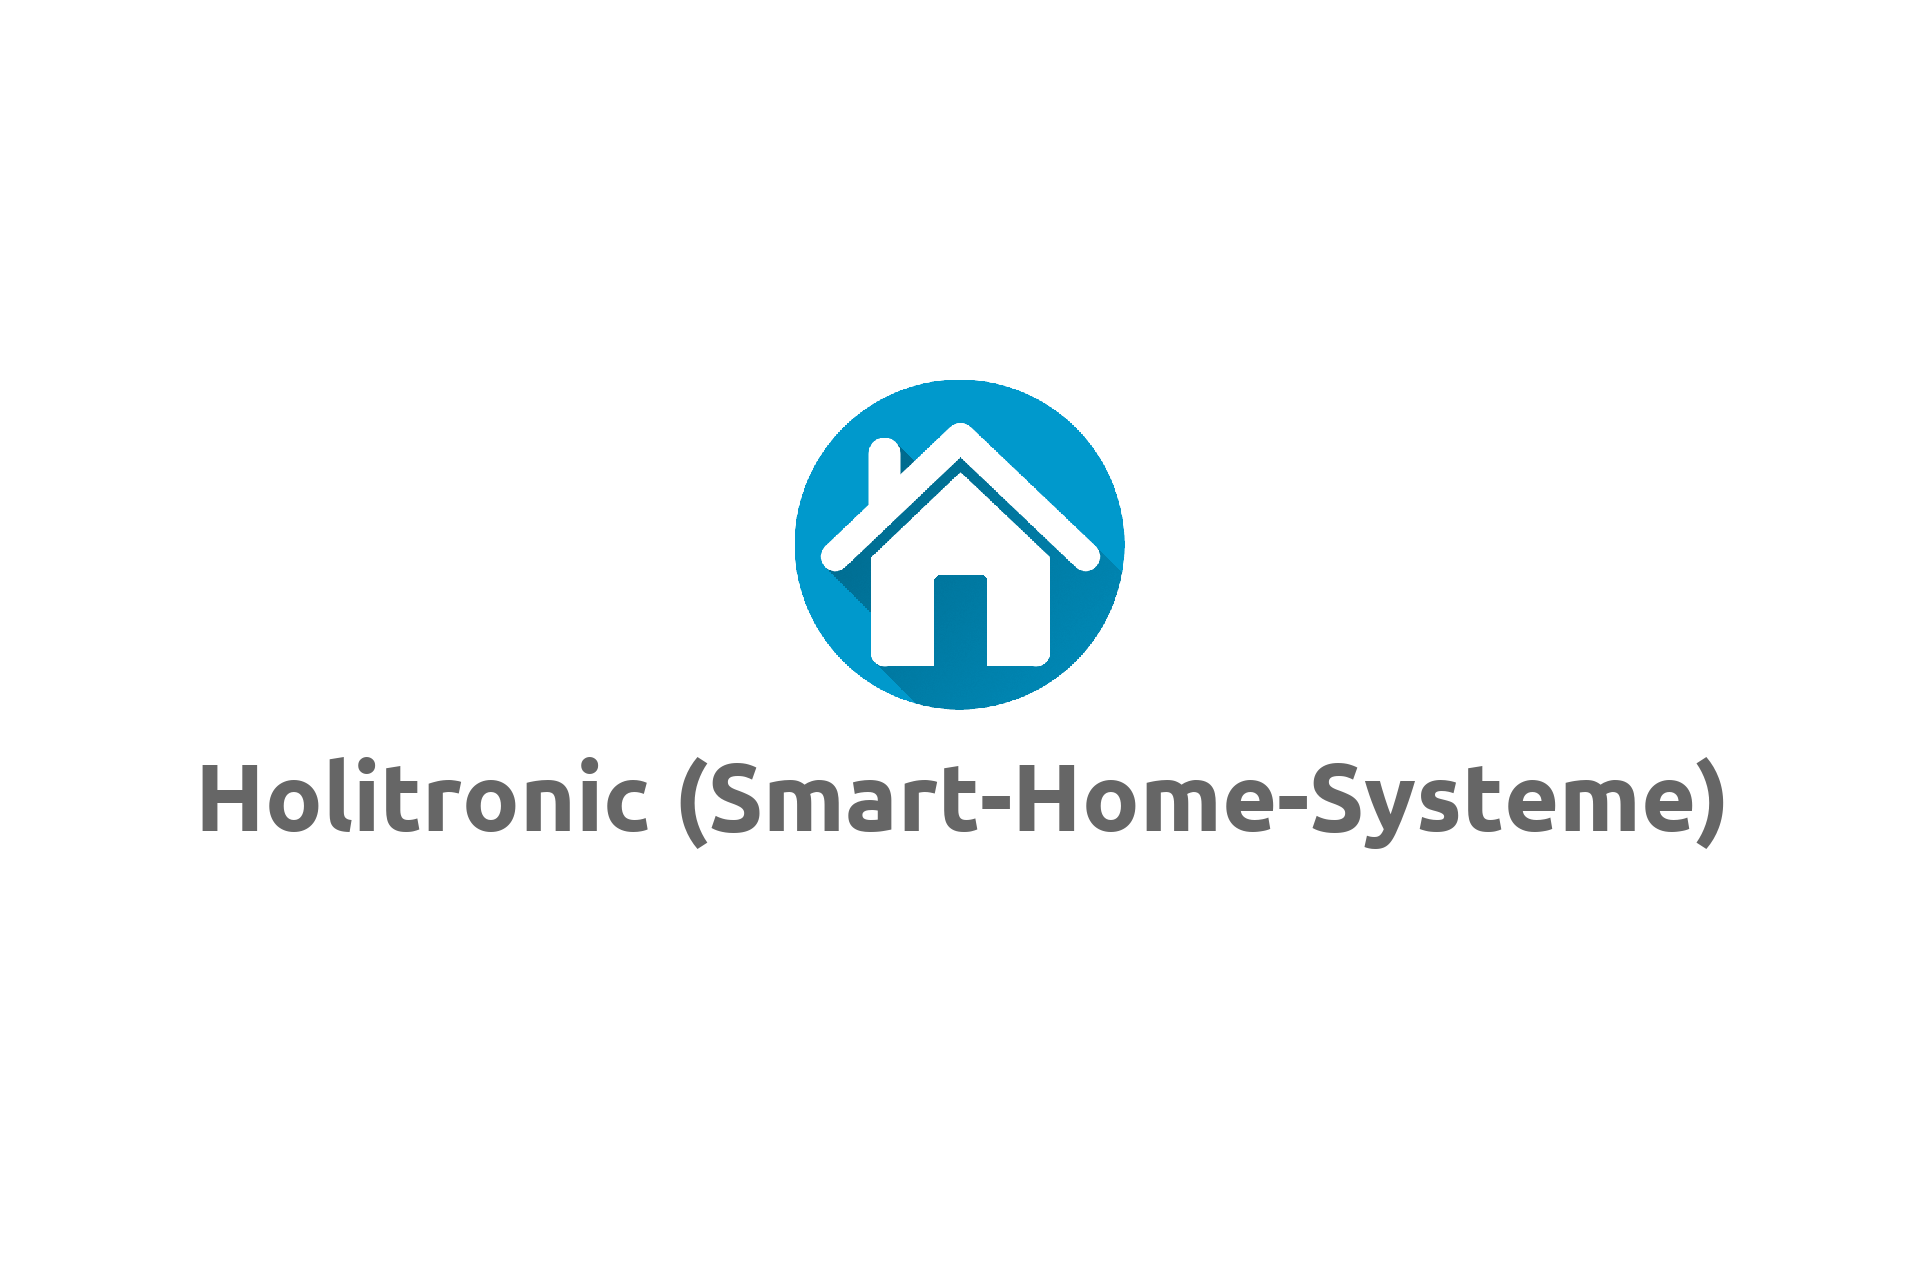 Holitronic (Smart-Home-Systeme)